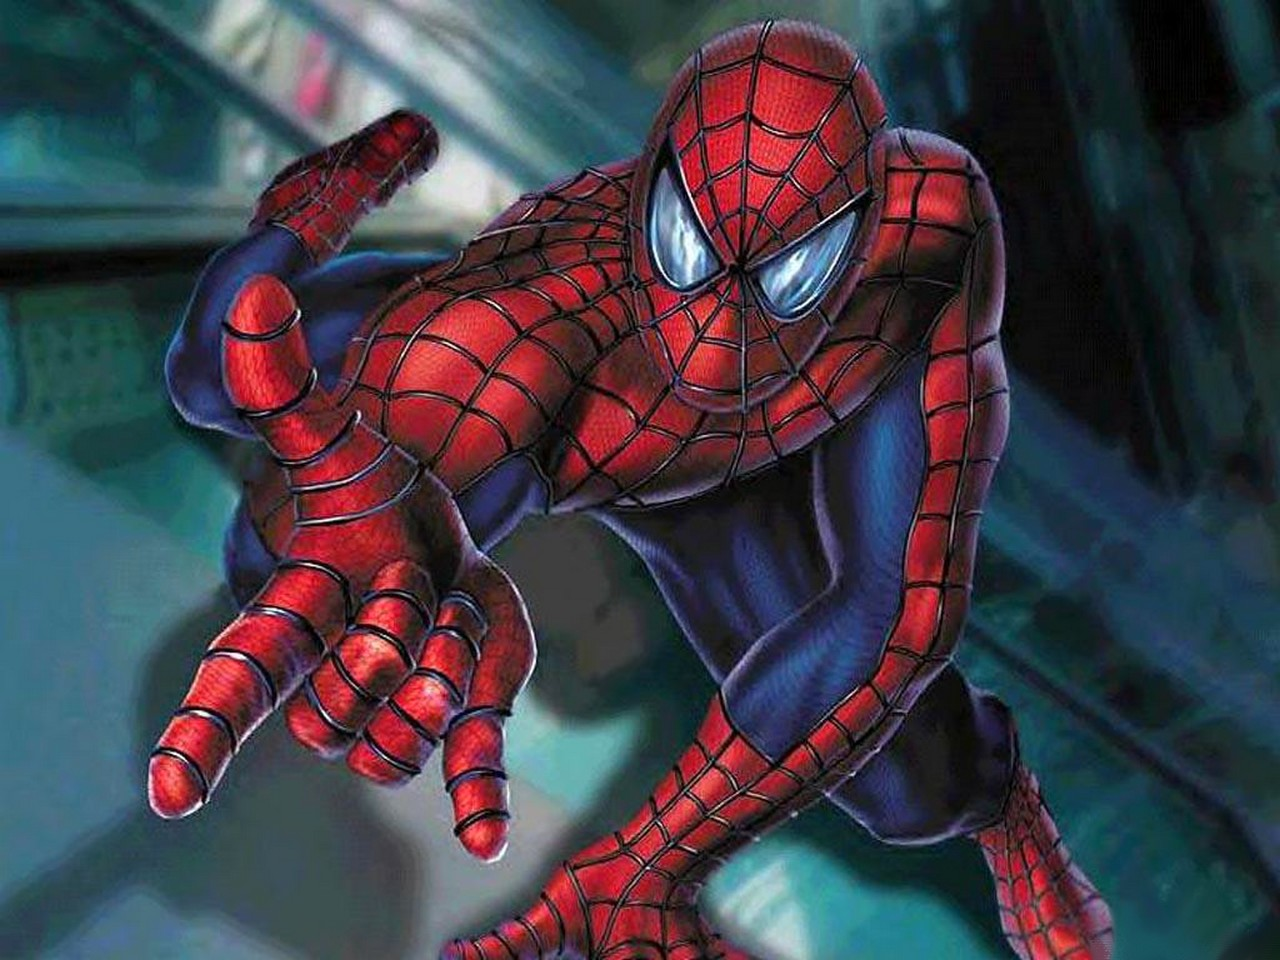 Spiderman Animated Wallpaper